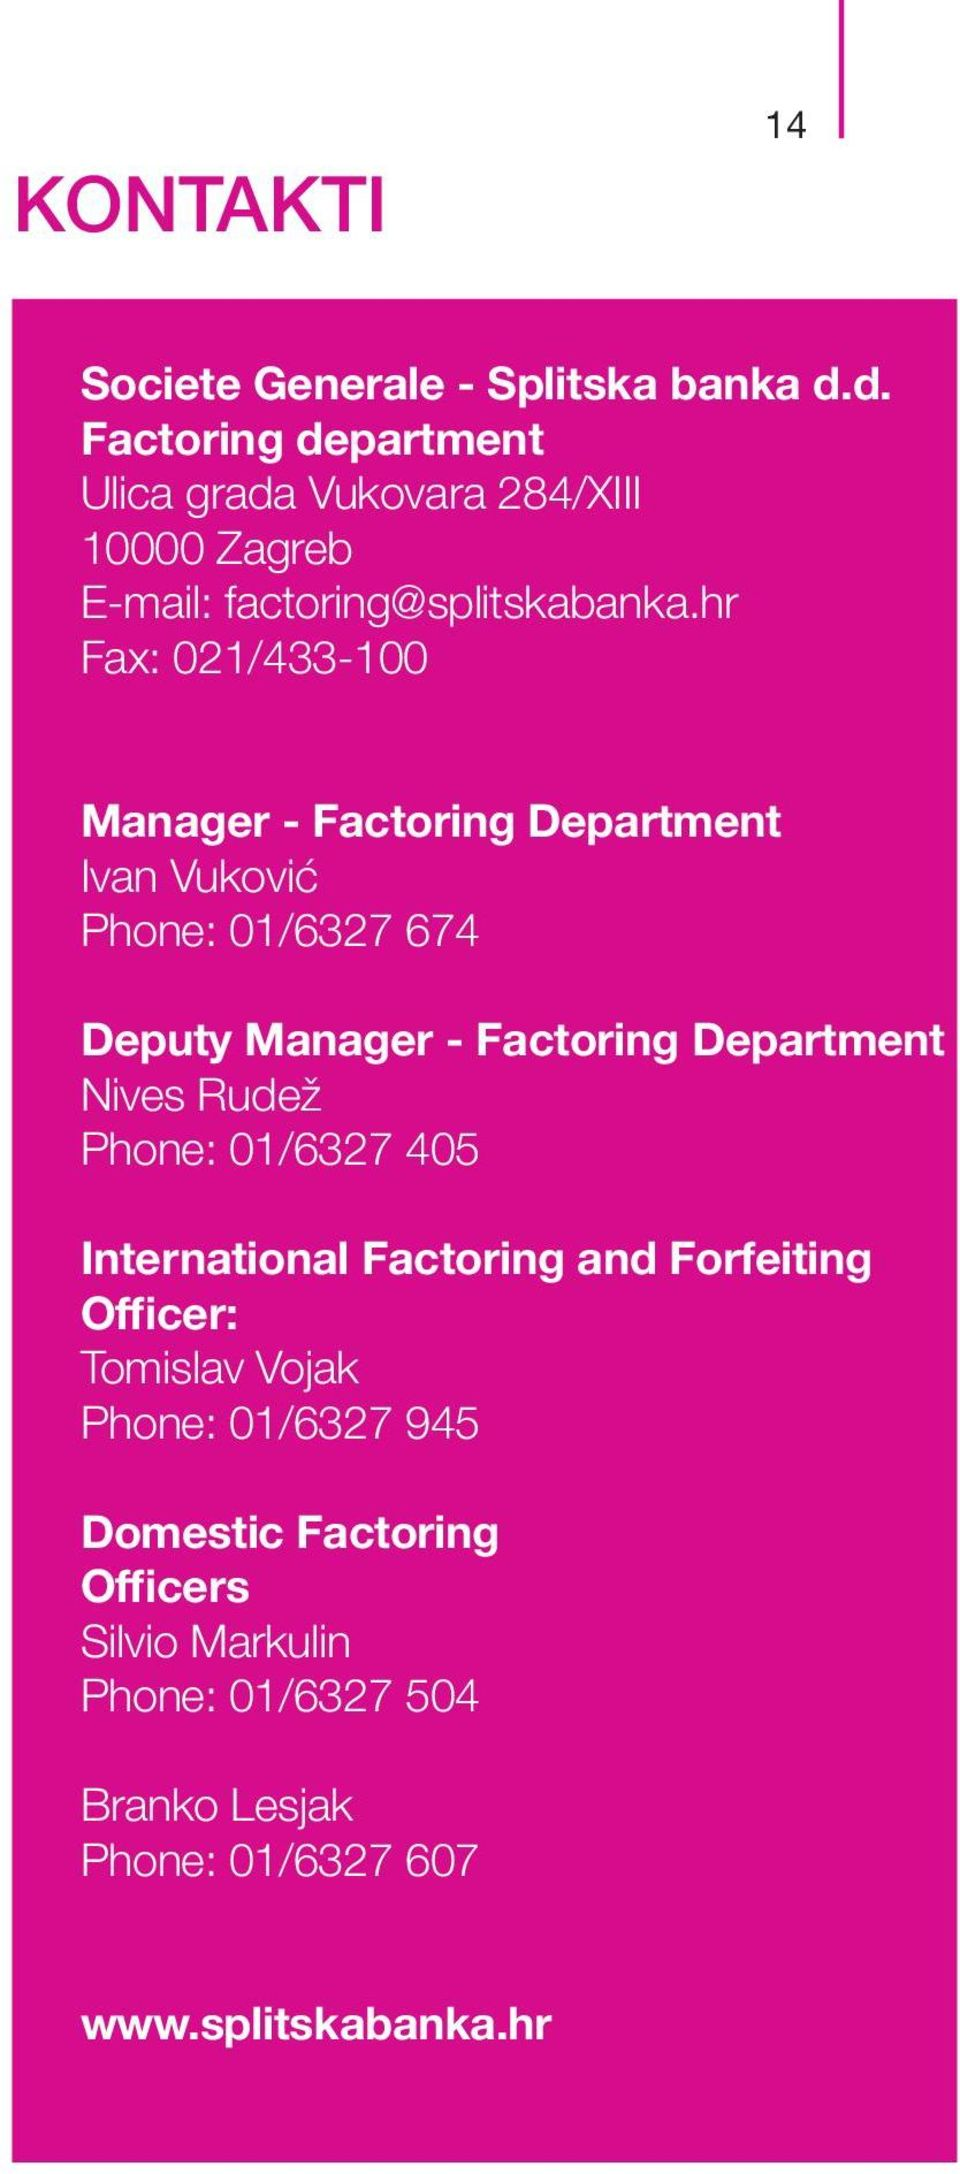 hr Fax: 021/433-100 Manager - Factoring Department Ivan Vuković Phone: 01/6327 674 Deputy Manager - Factoring Department